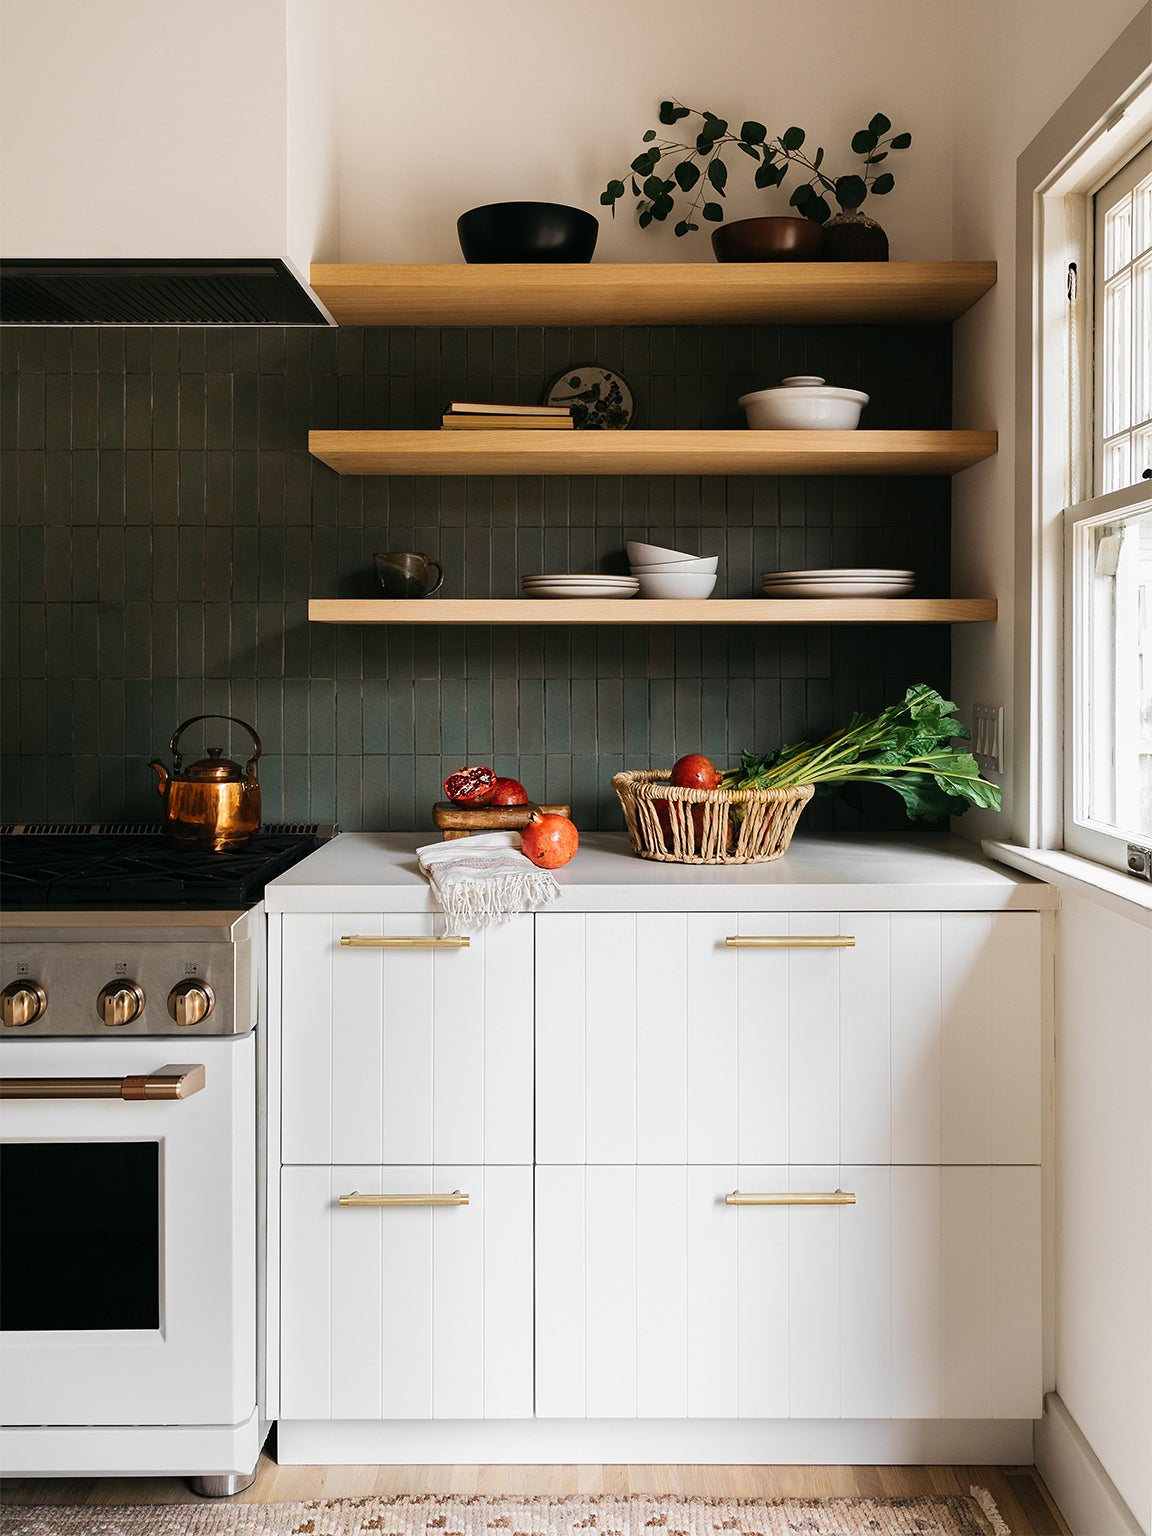 IKEA kitchen cabinets - white cabinets in kitchen